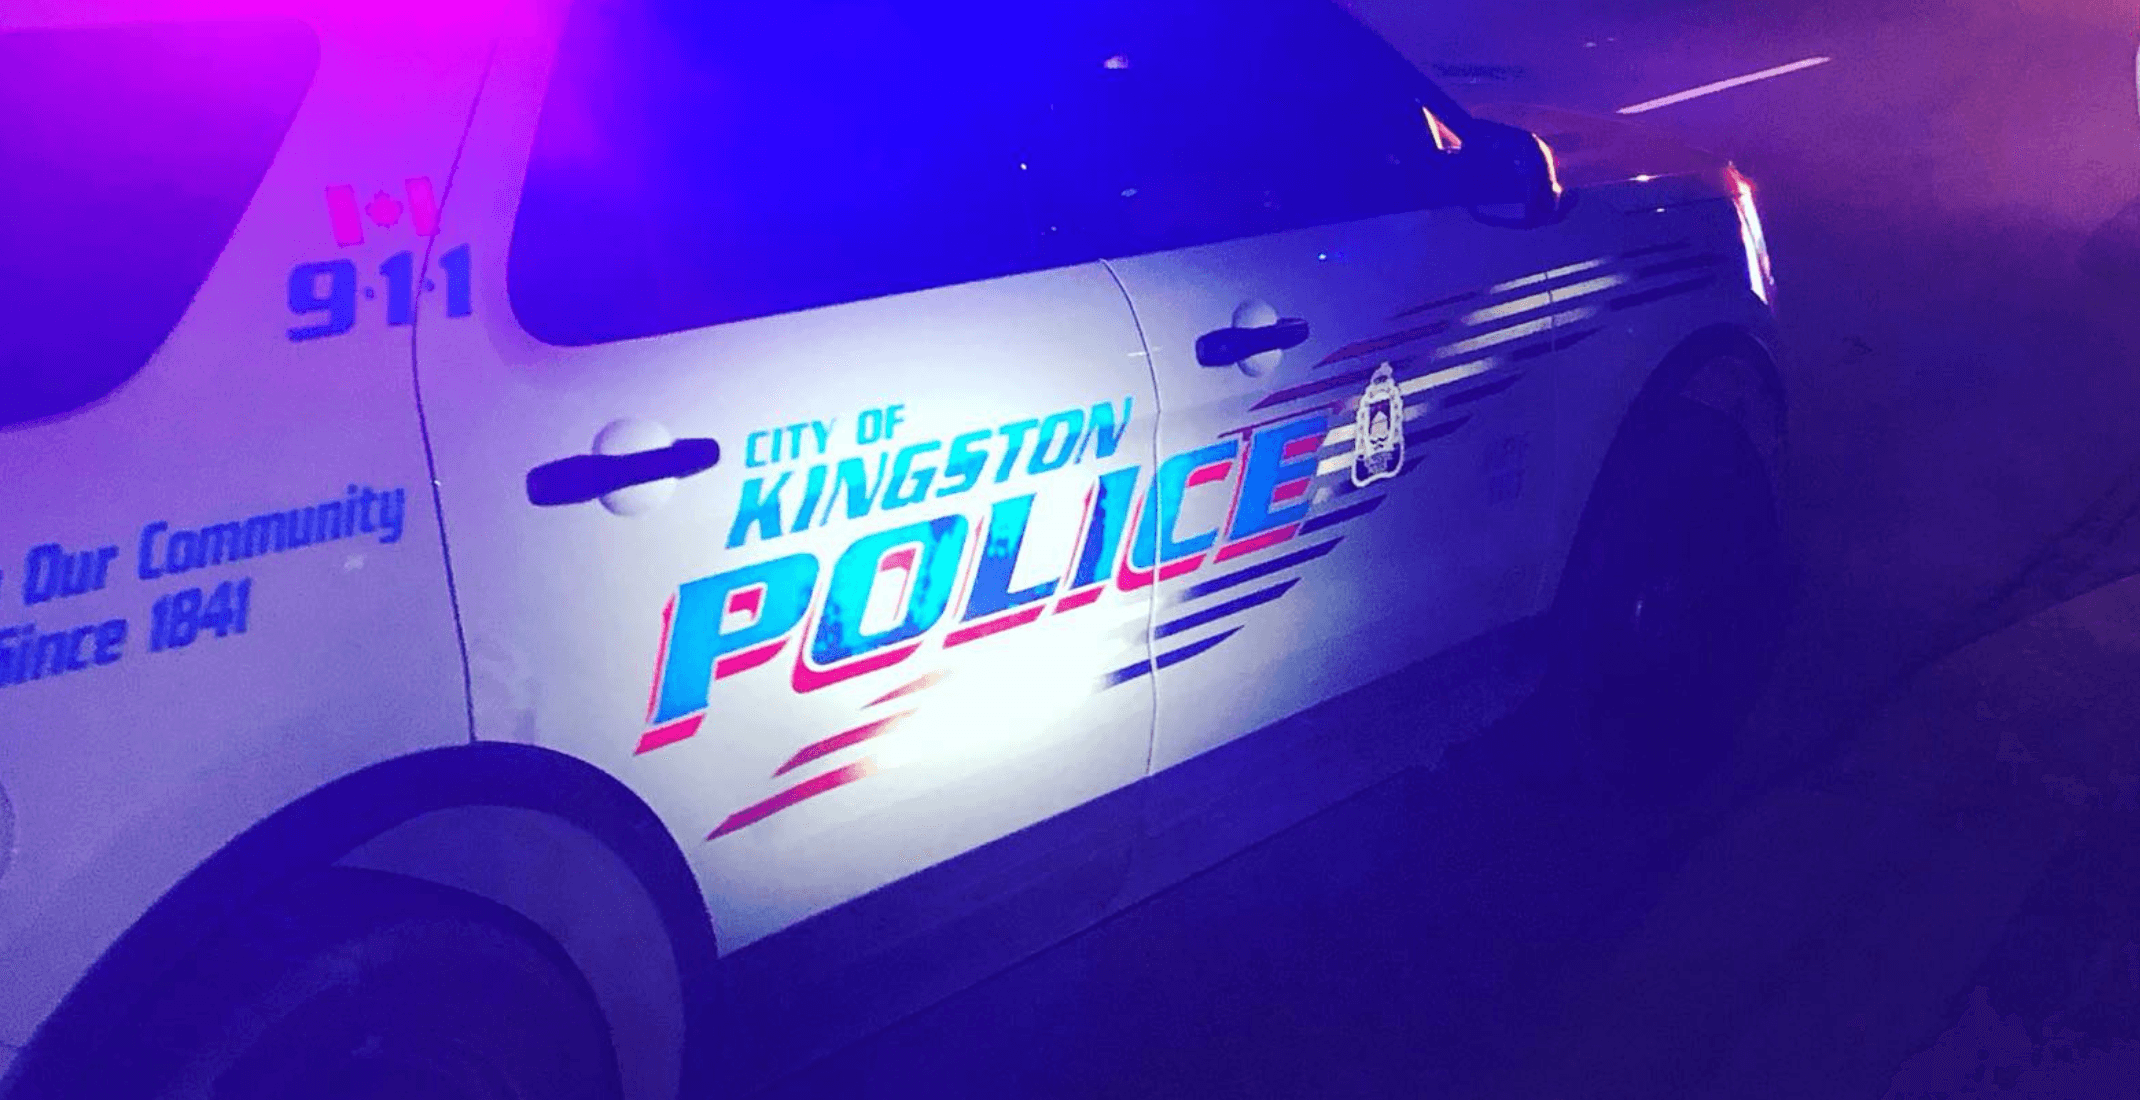 Kingston woman arrested after being found in stranger's bathtub